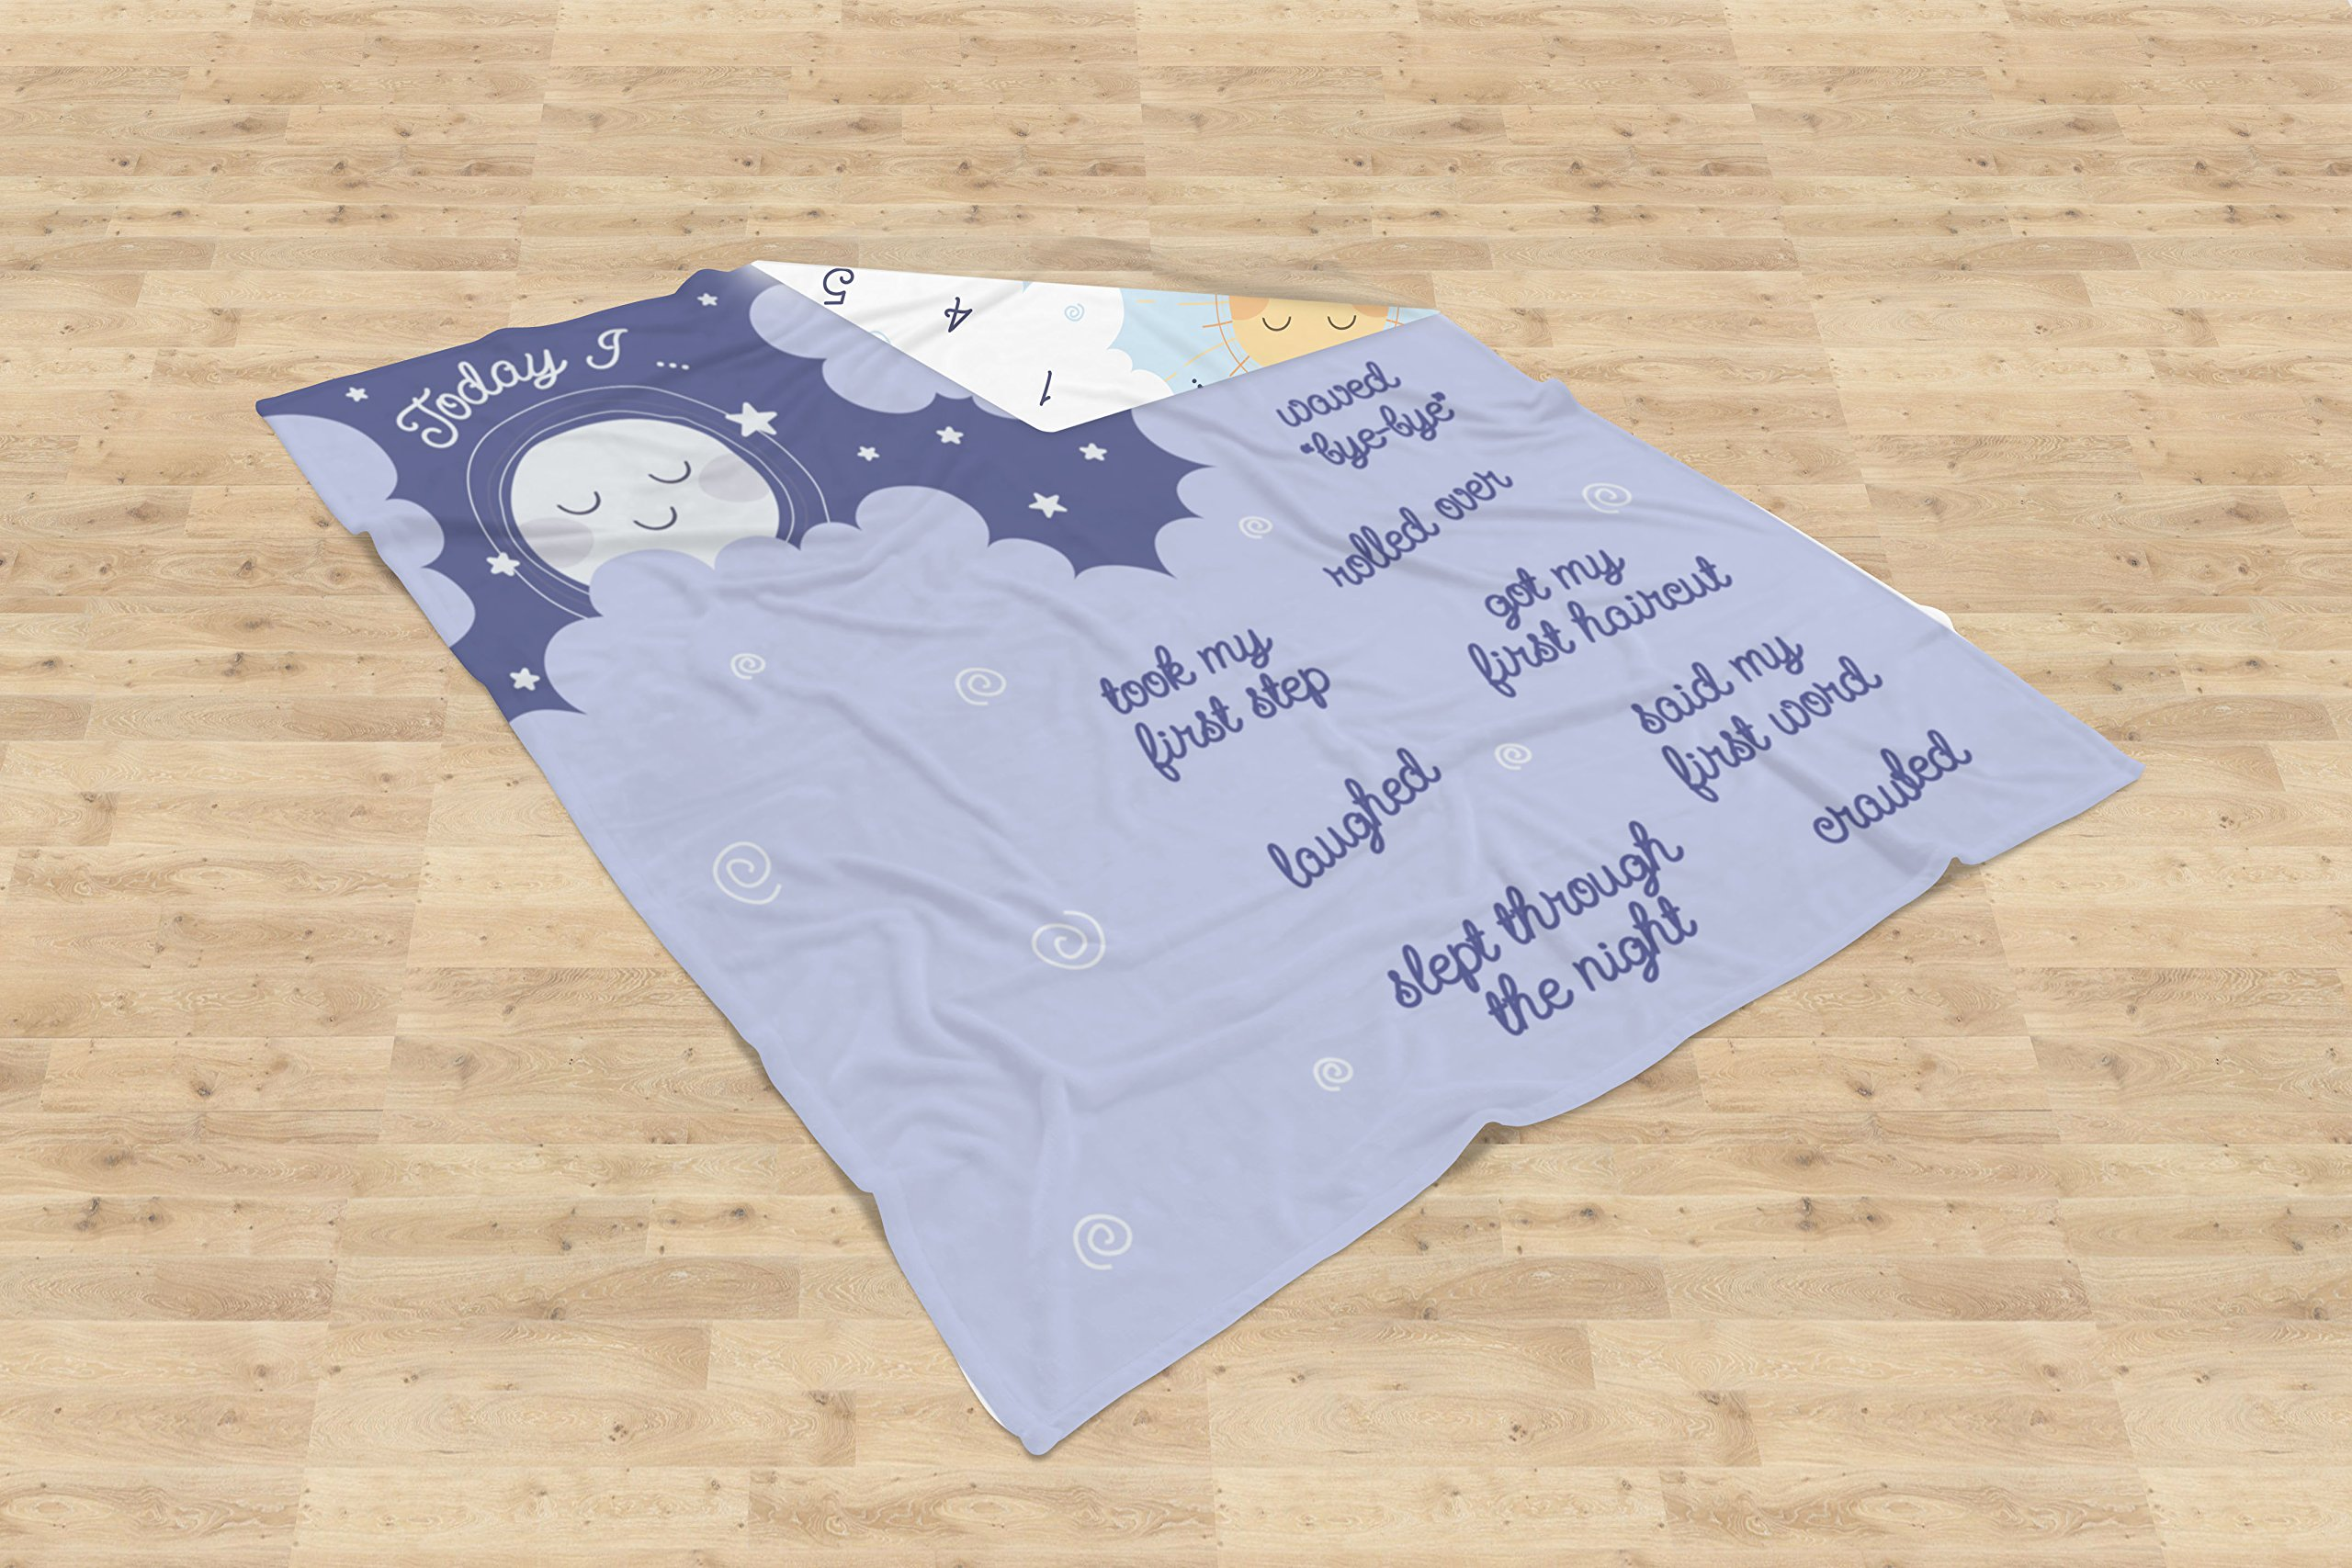 Double Sided Monthly Baby Milestone Blanket- Month Blanket for Baby Pictures | Photo Blanket with Baby Photo Props | Monthly Blankets for Newborns | Baby Boy and Girl Milestone Blanket by Scheuer Brand (Image #9)